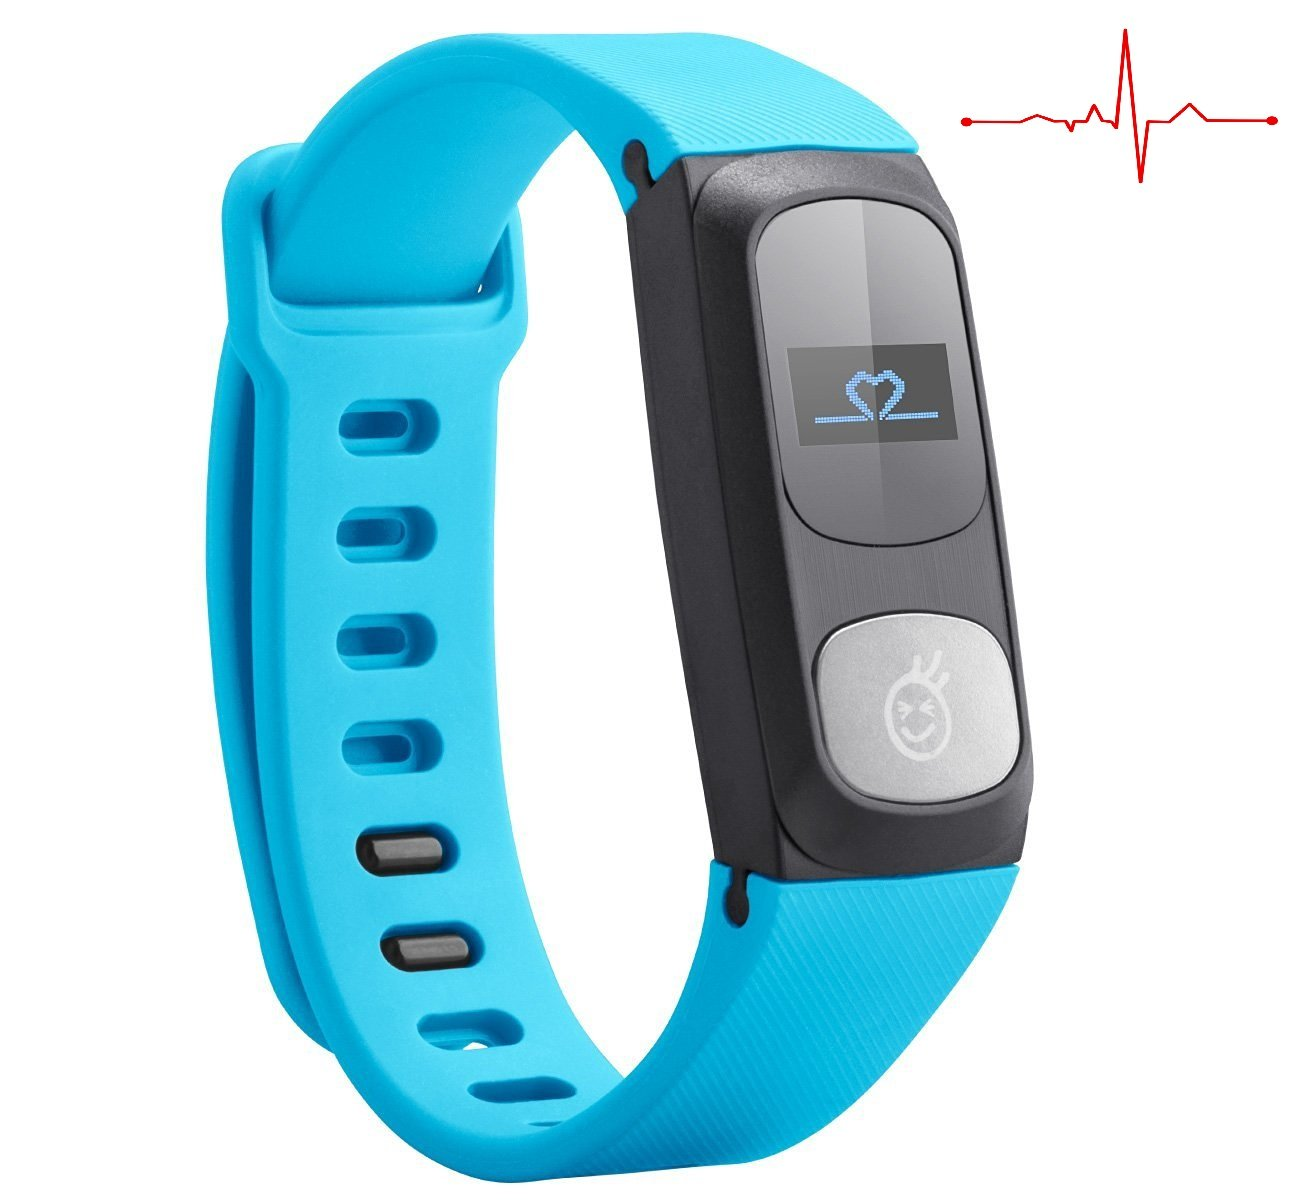 HeHa Women Heart Rate Monitor Sleep Tracker Weight Loss Calorie Counter Fitness Watches with Sleep Monitor Alarm Clock